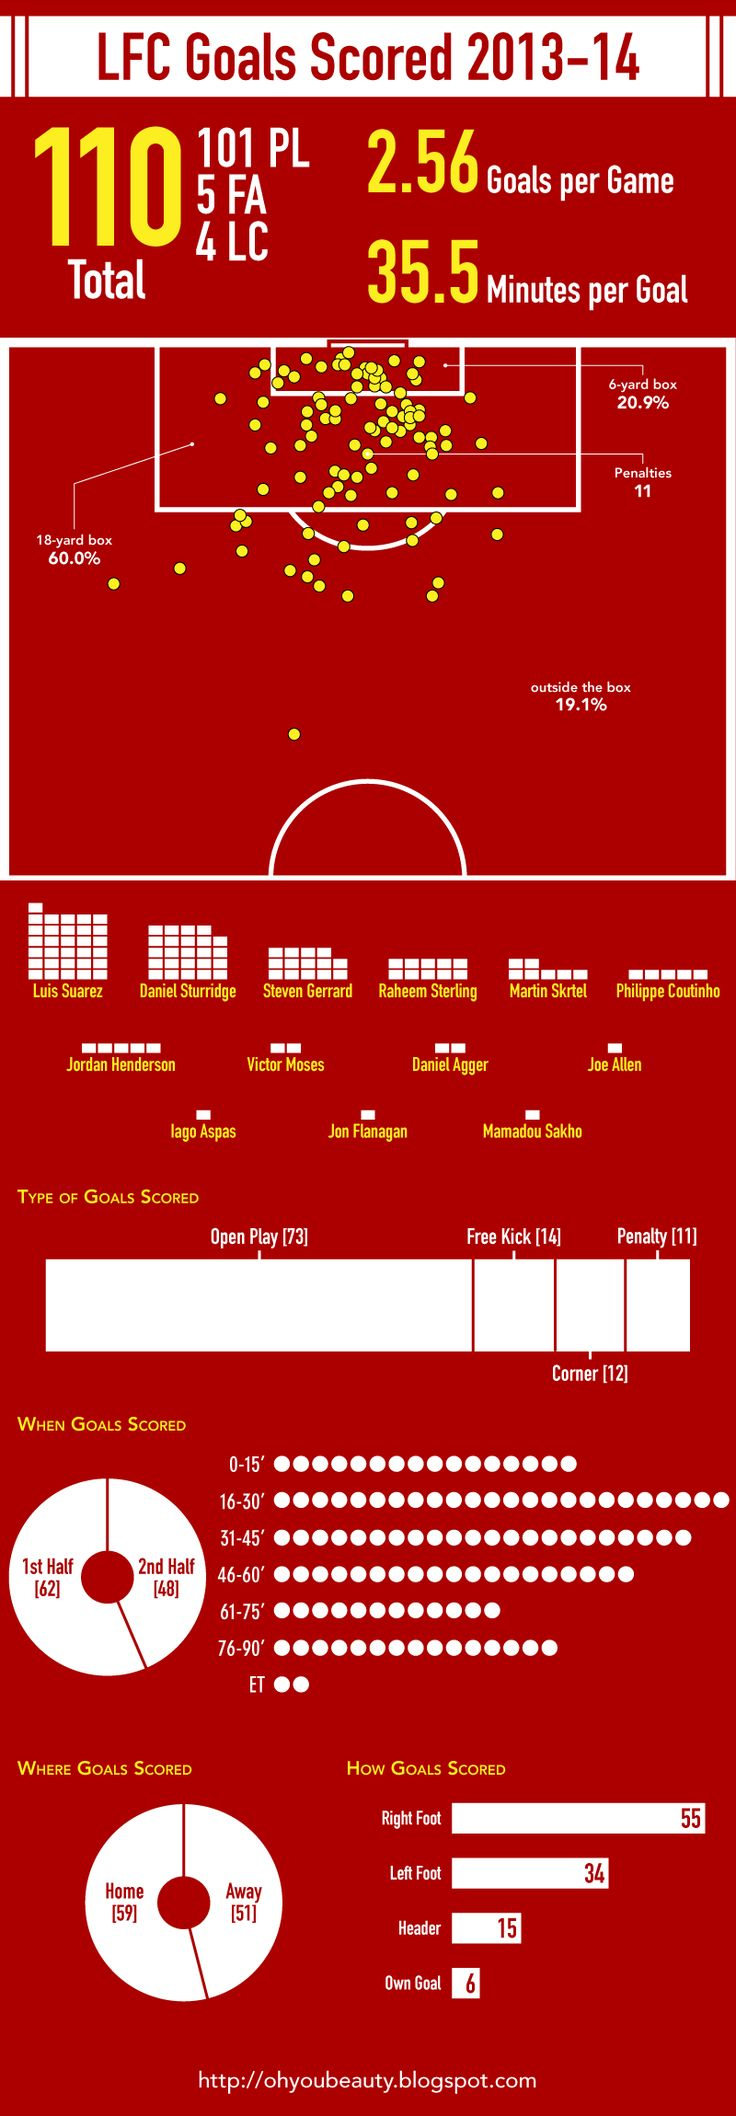 Liverpool Goals Scored and Conceded 2013-14